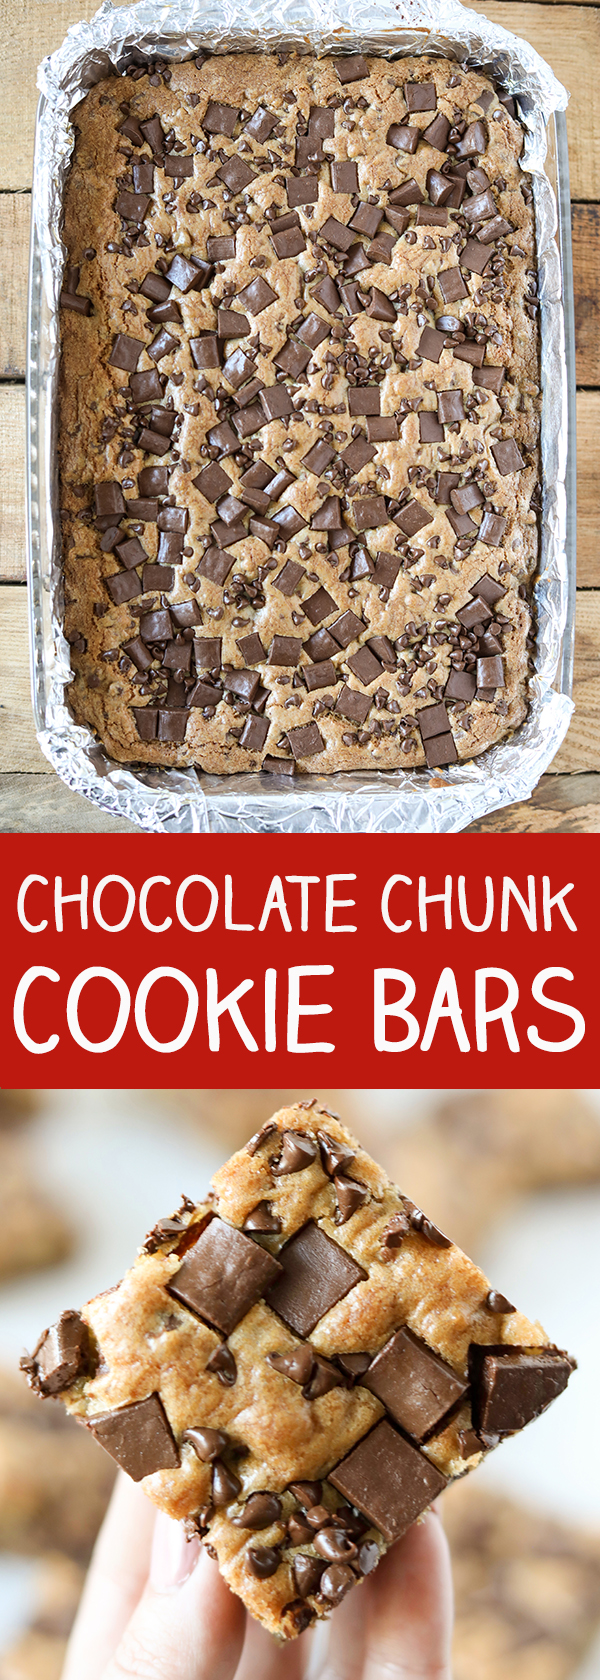 Chocolate Chunk Chocolate Chip Cookie Bars